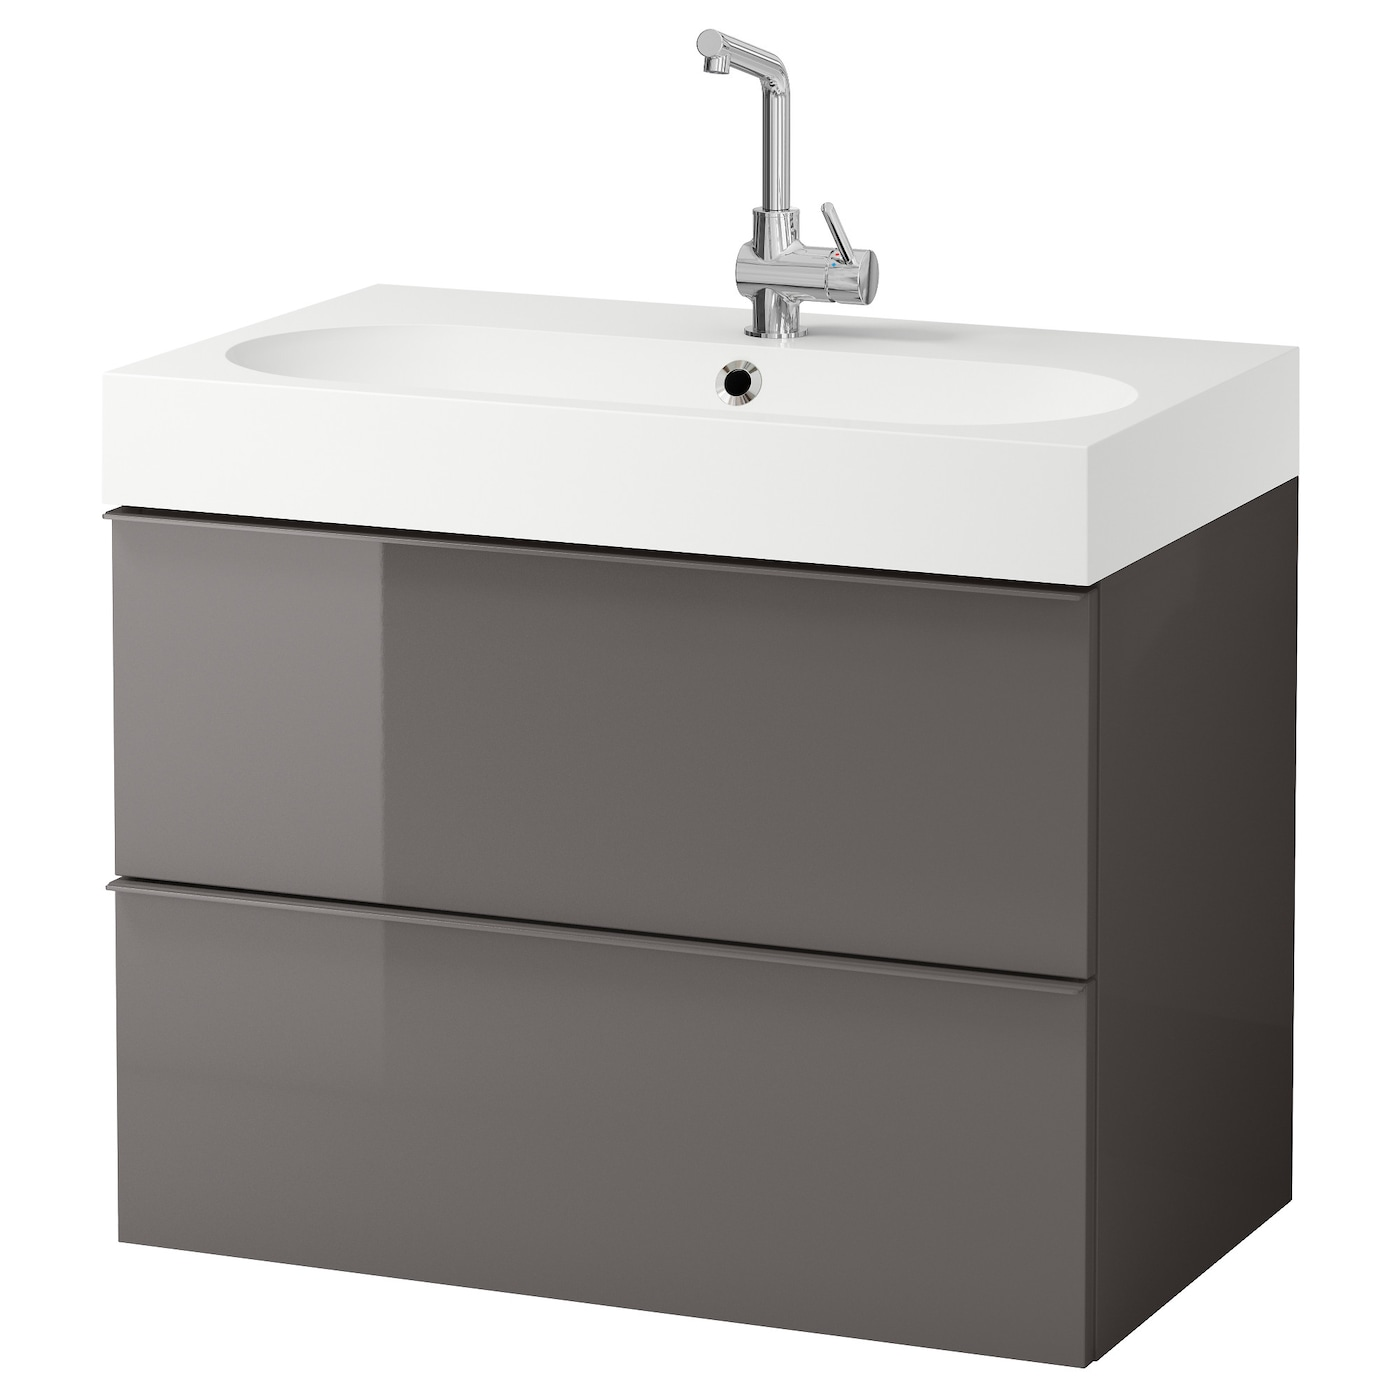 Vanity units sink cabinets wash stands ikea for Bathroom cabinets 40cm wide